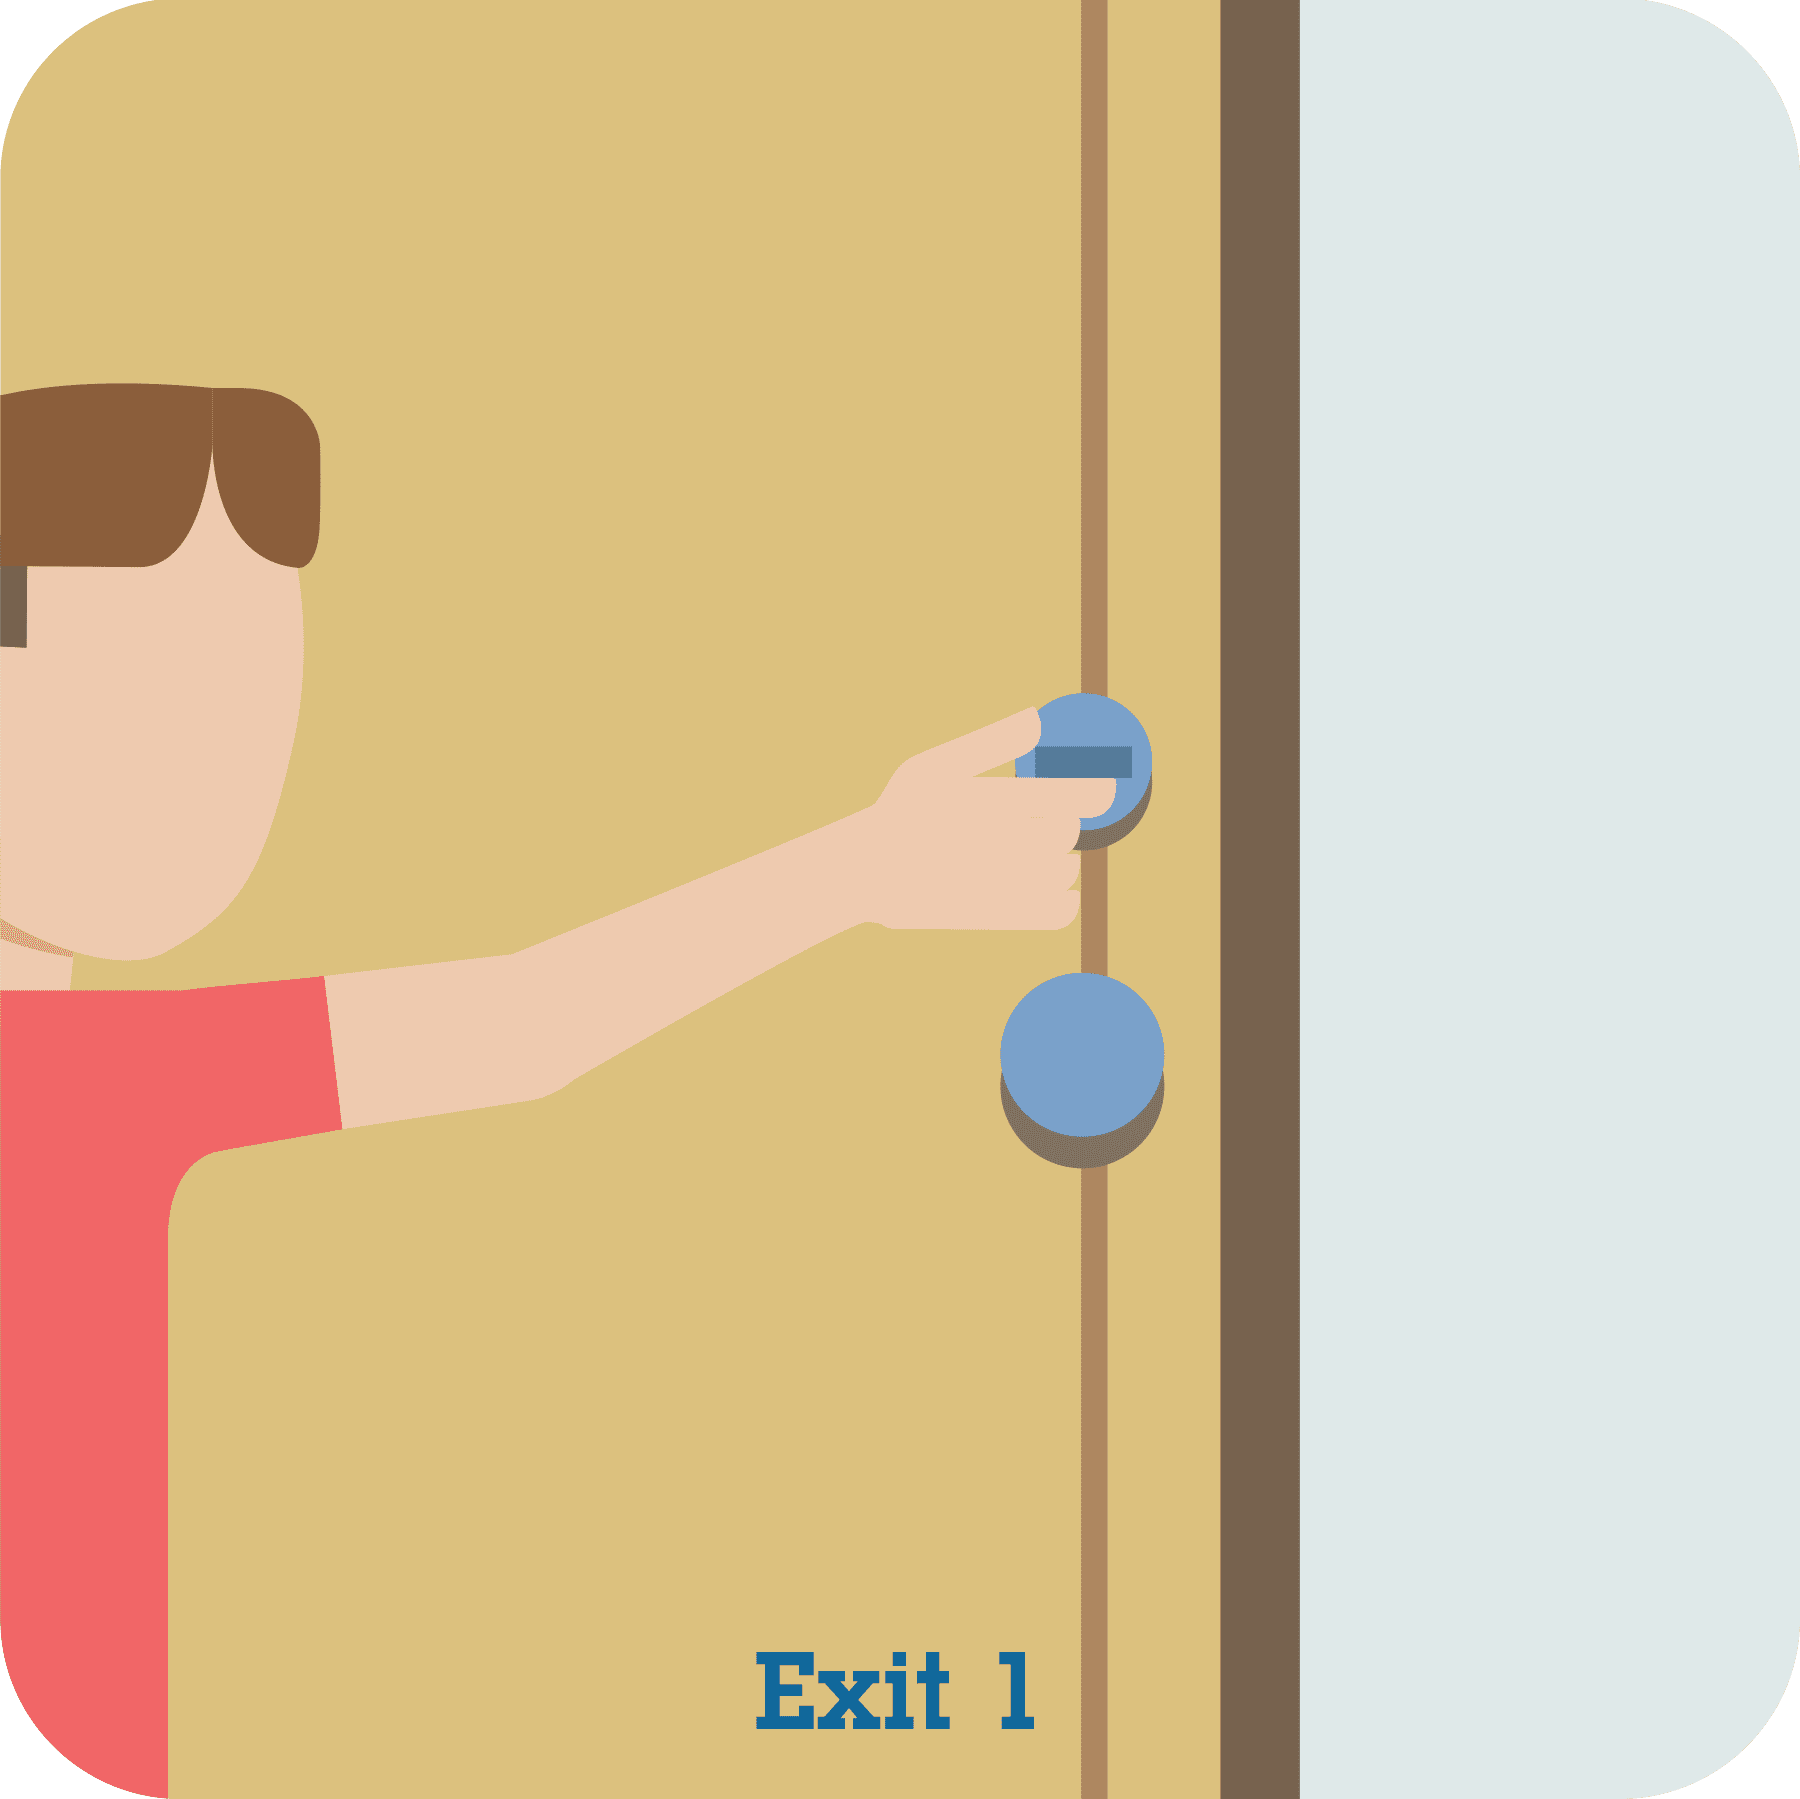 A child unlocking a deadbolt on a door.